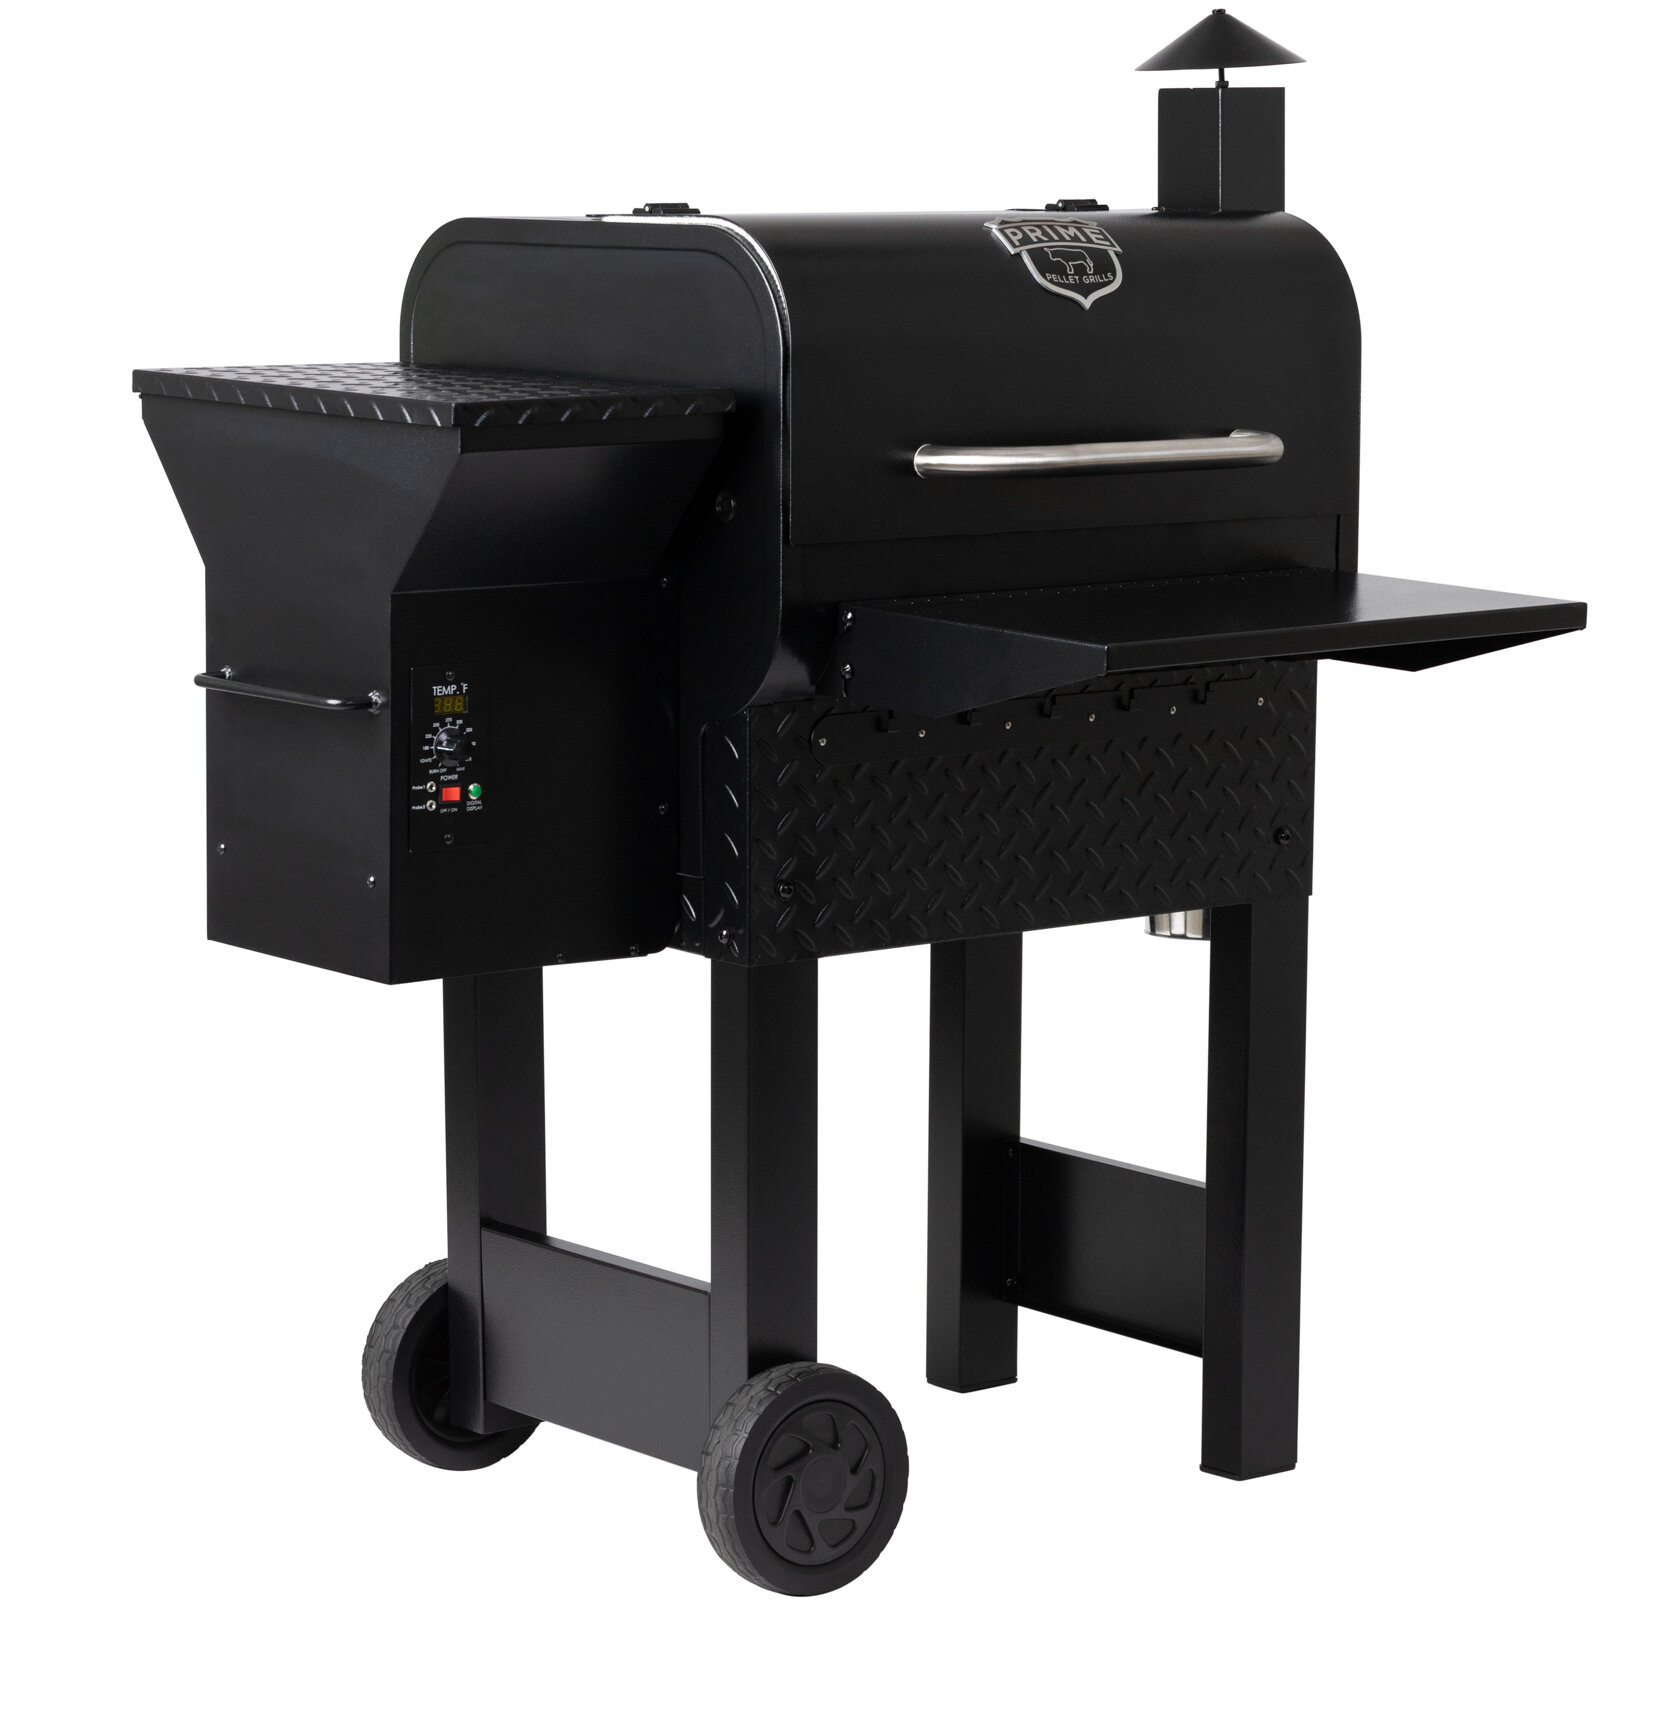 Z GRILLS Pro Pellet Grill and Smoker in Black